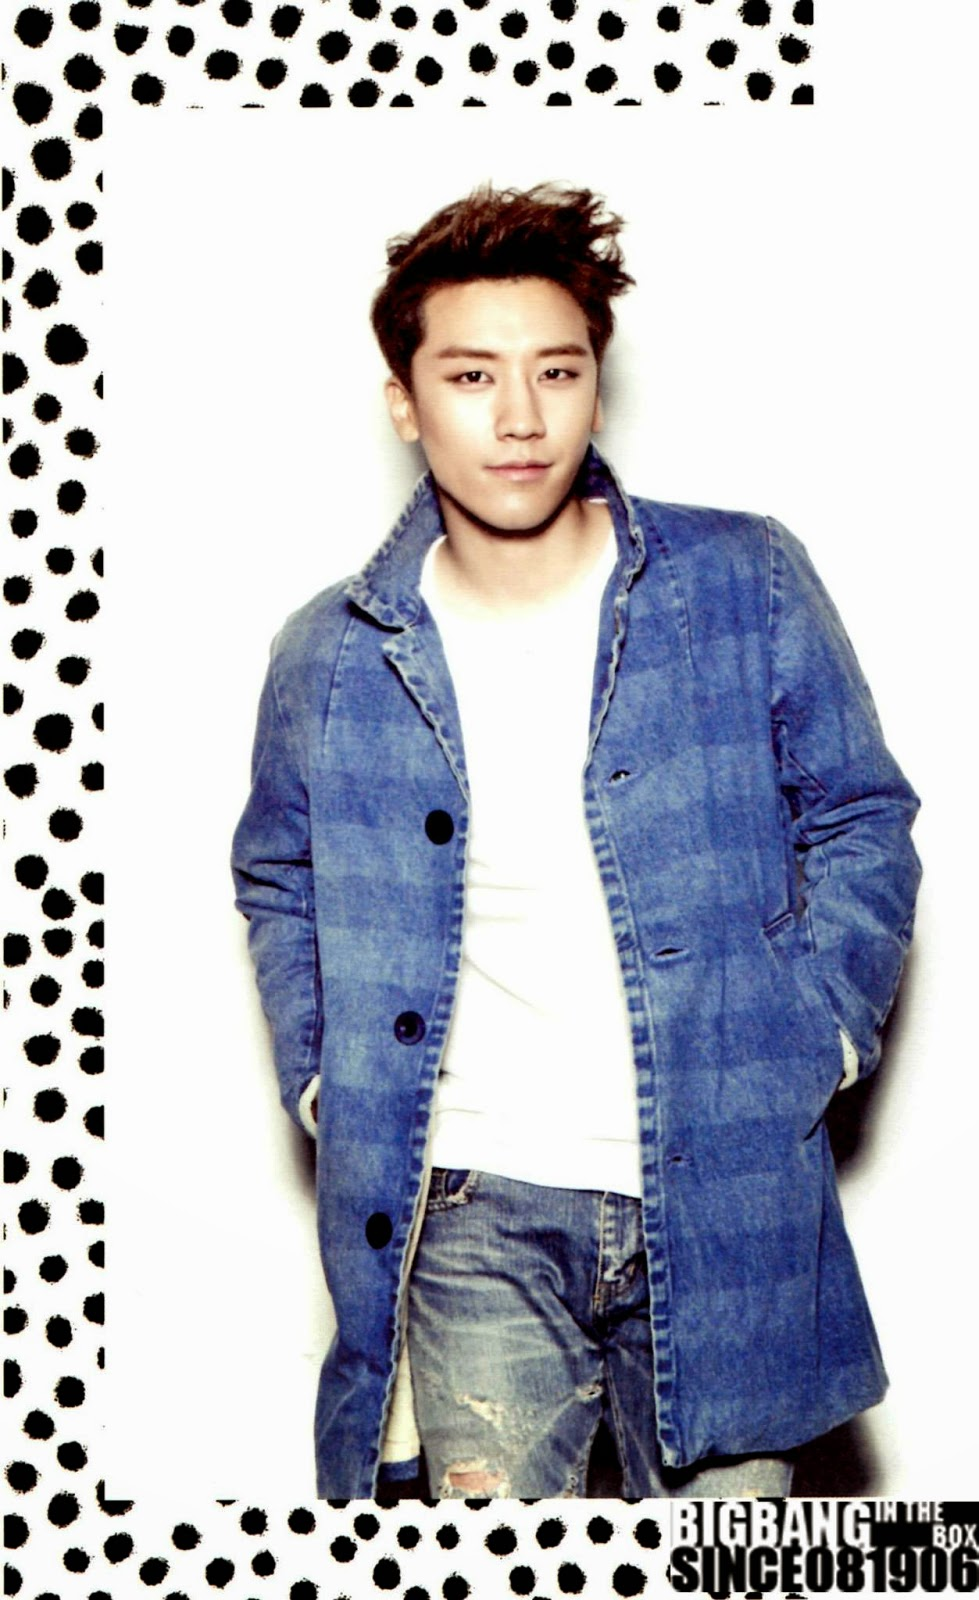 Scans: Big Bang's 2015 Welcoming Collection [PHOTOS]  Scans: Big Bang's 2015 Welcoming Collection [PHOTOS]  Scans: Big Bang's 2015 Welcoming Collection [PHOTOS]  Scans: Big Bang's 2015 Welcoming Collection [PHOTOS]  Scans: Big Bang's 2015 Welcoming Collection [PHOTOS]